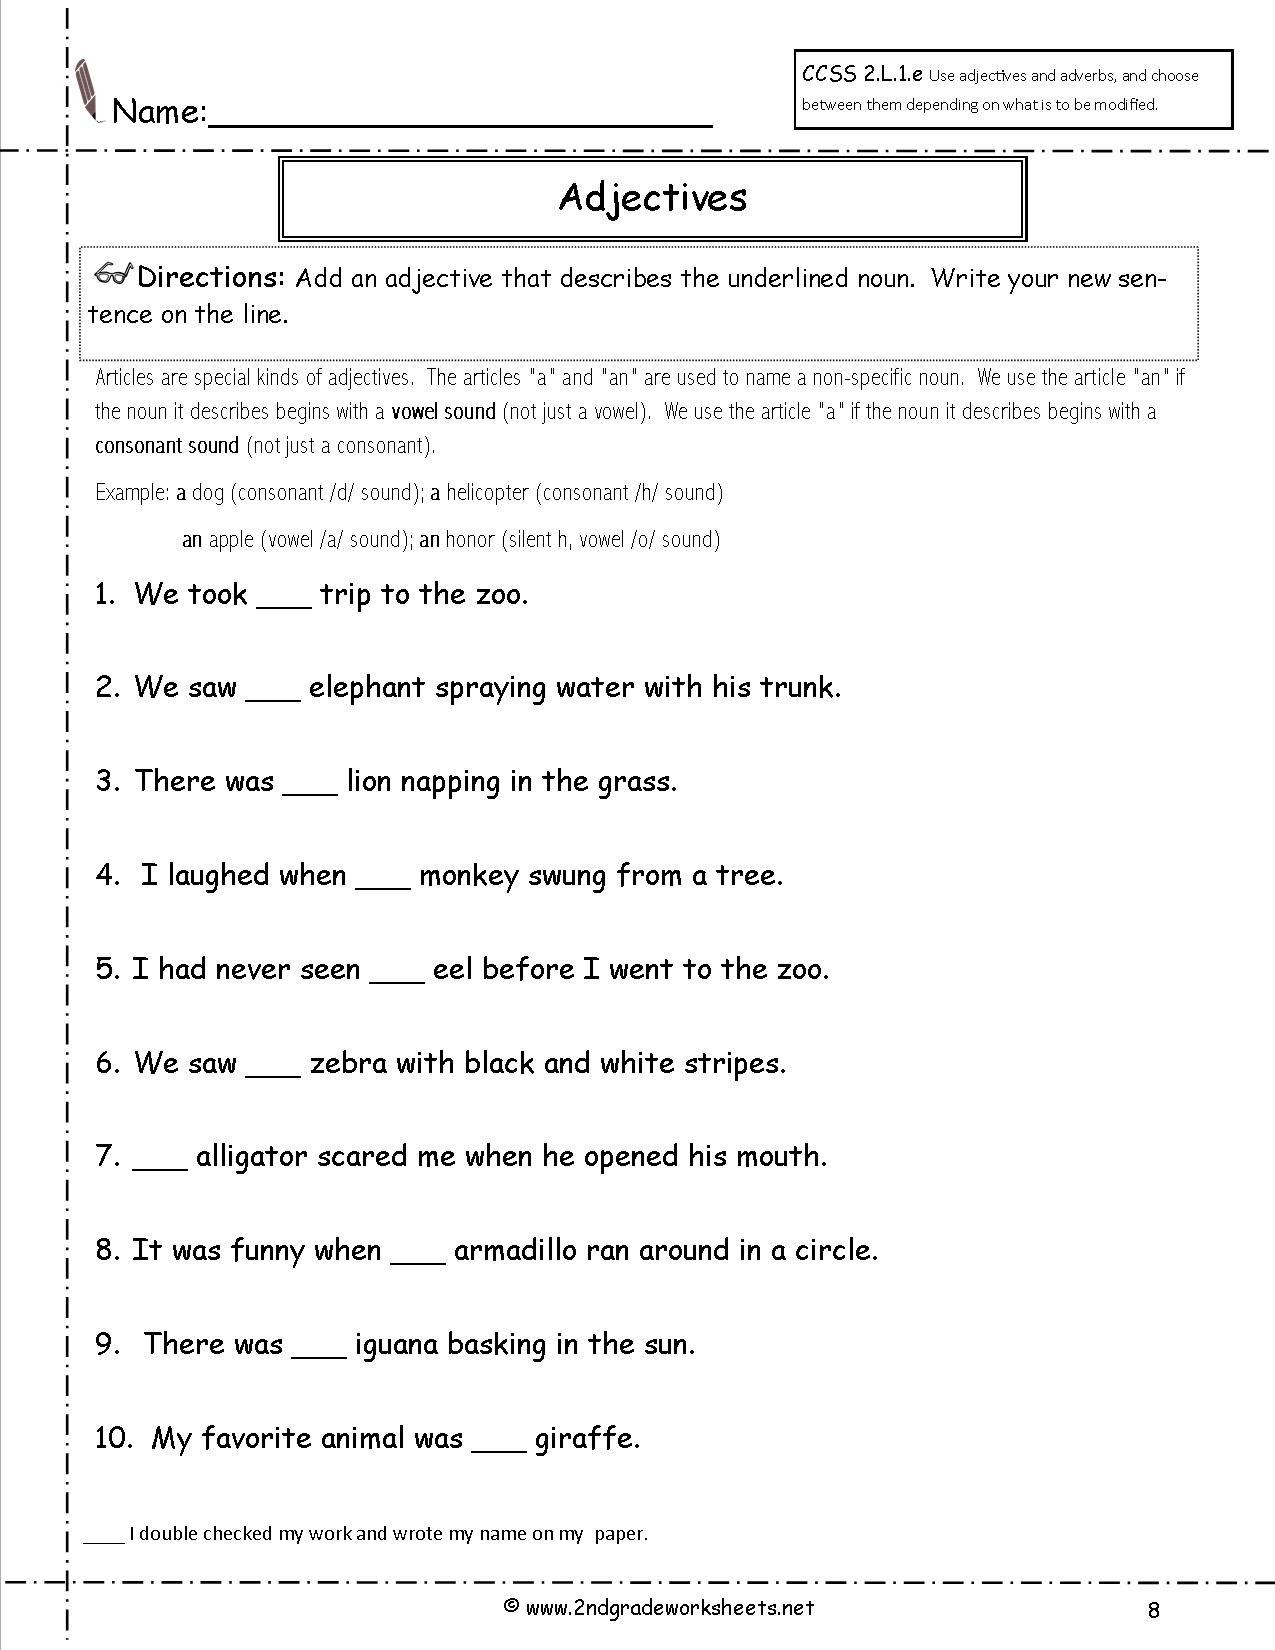 Adjectives Worksheet 2nd Grade Free Language Grammar Worksheets and Printouts